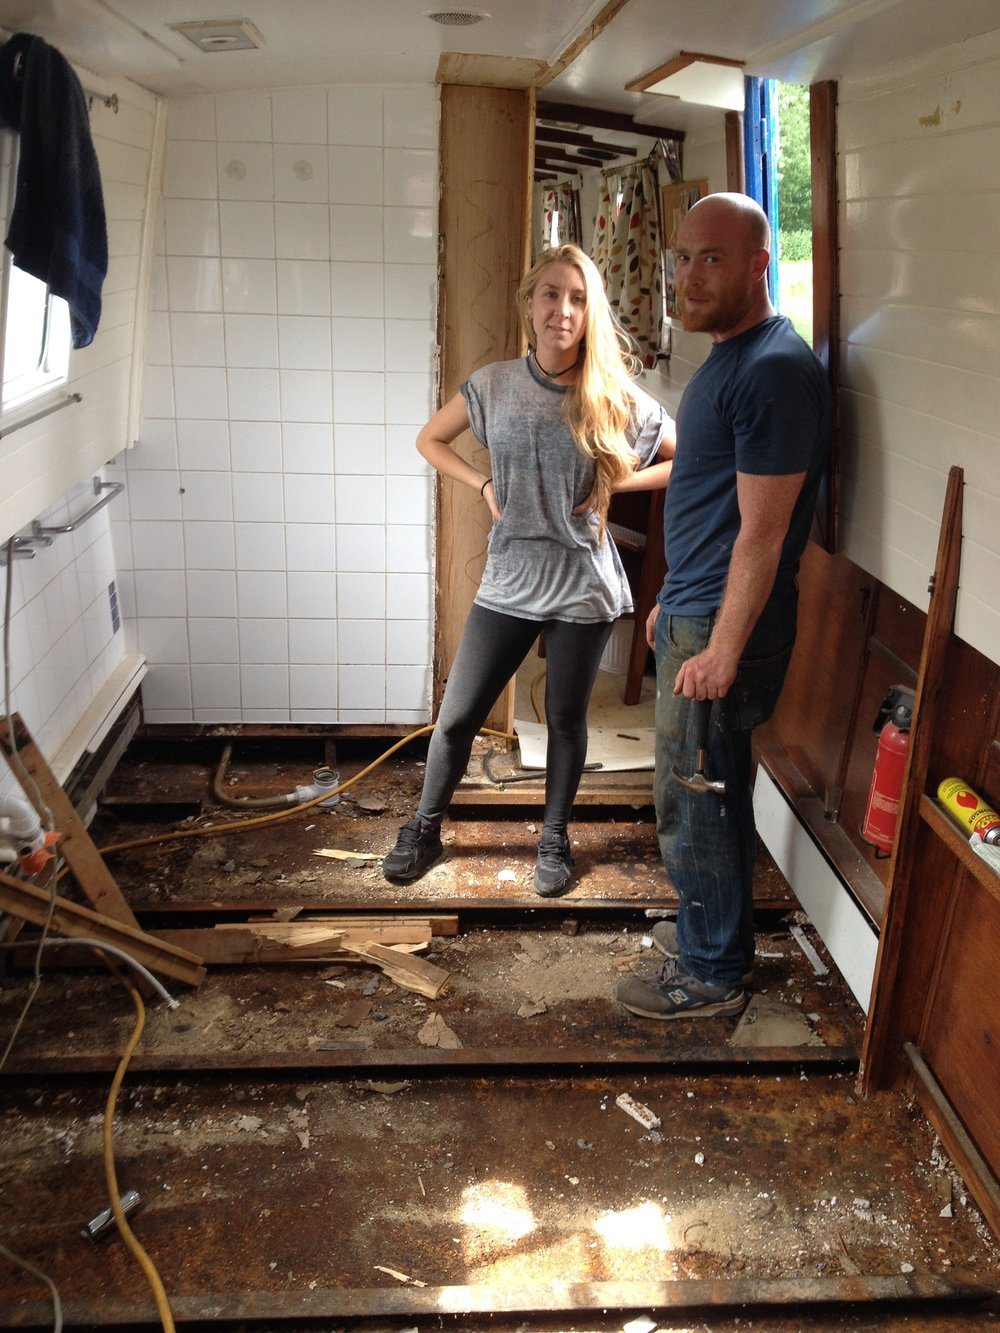 Taking up the floors to de-rust and treat